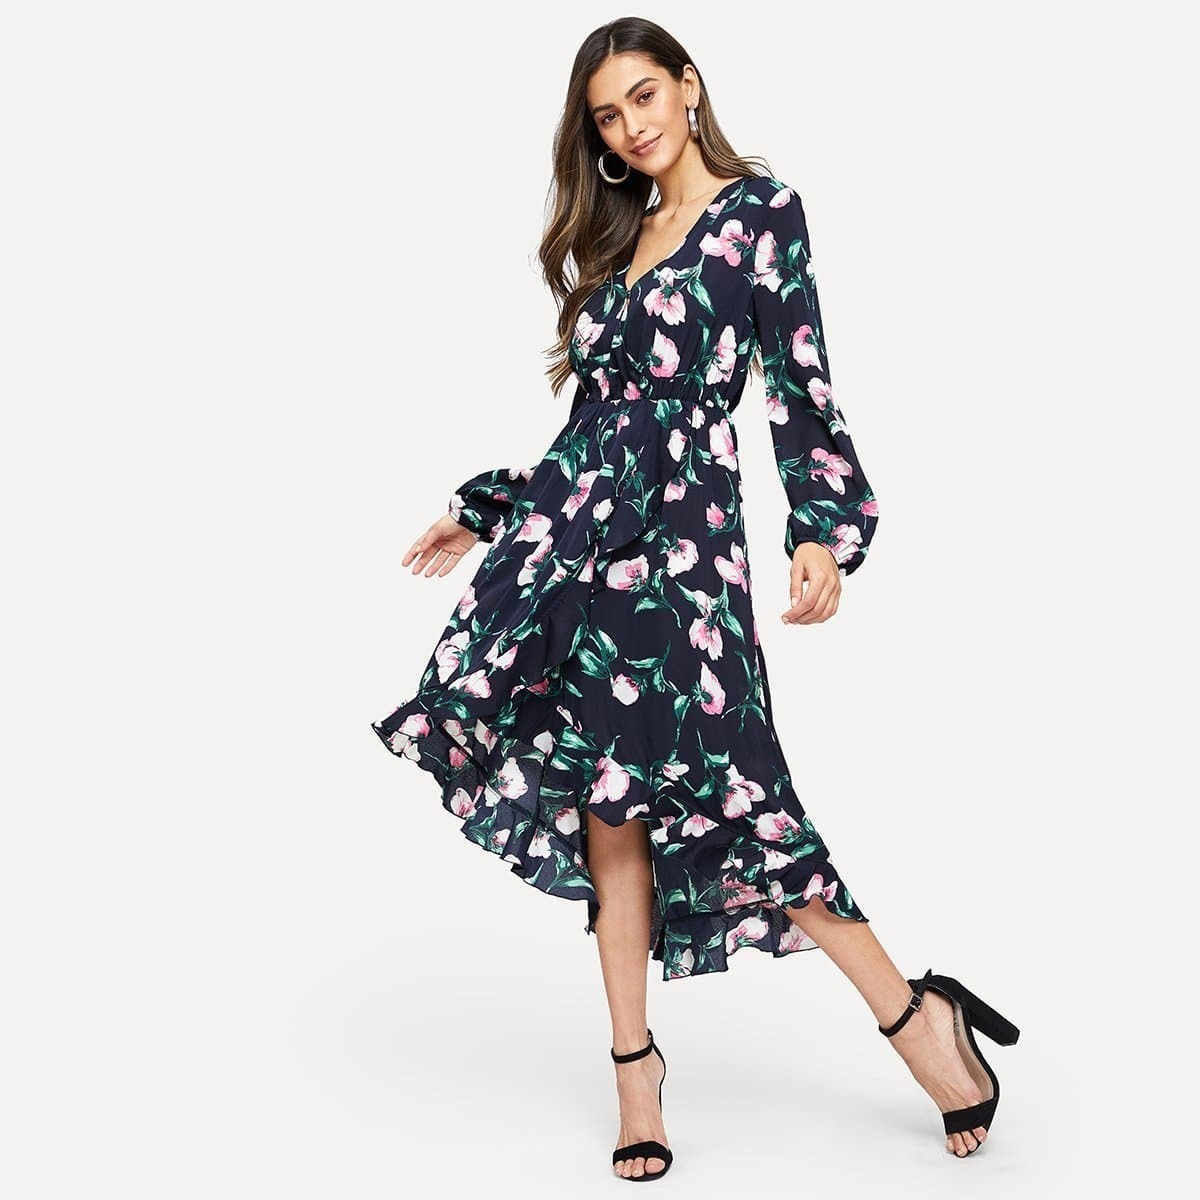 Floral Print Ruffle Hem Surplice Dress